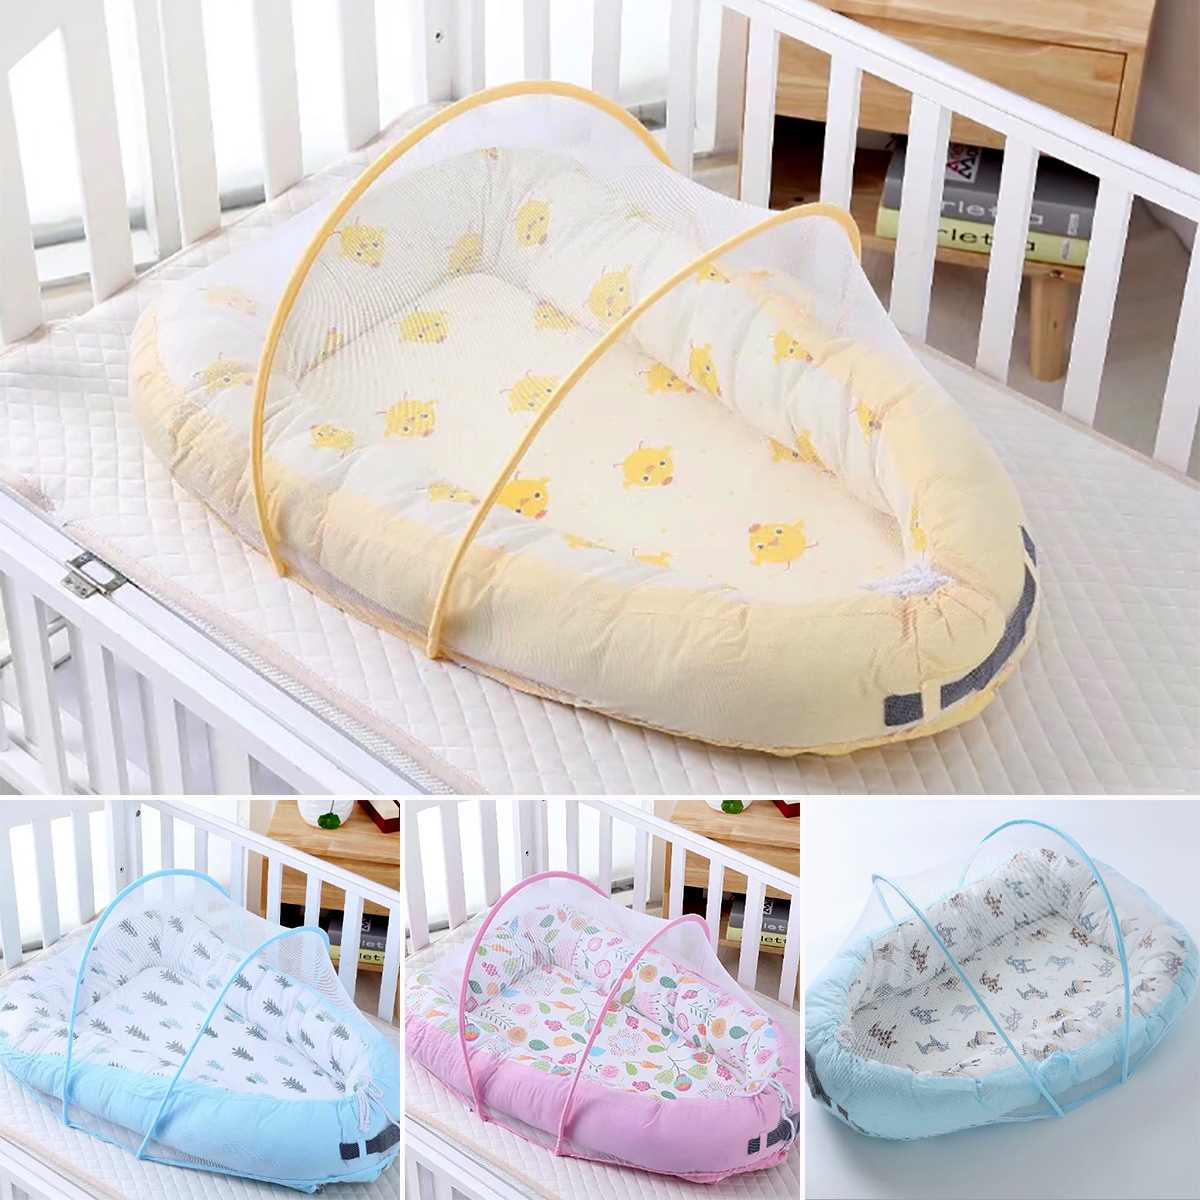 Baby Alcofa Nest Bed Portable Crib Travel Bed Infant Toddler Cotton Cradle Protable Carrycot For Newborn Baby Bassinet BumperBaby Alcofa Nest Bed Portable Crib Travel Bed Infant Toddler Cotton Cradle Protable Carrycot For Newborn Baby Bassinet Bumper